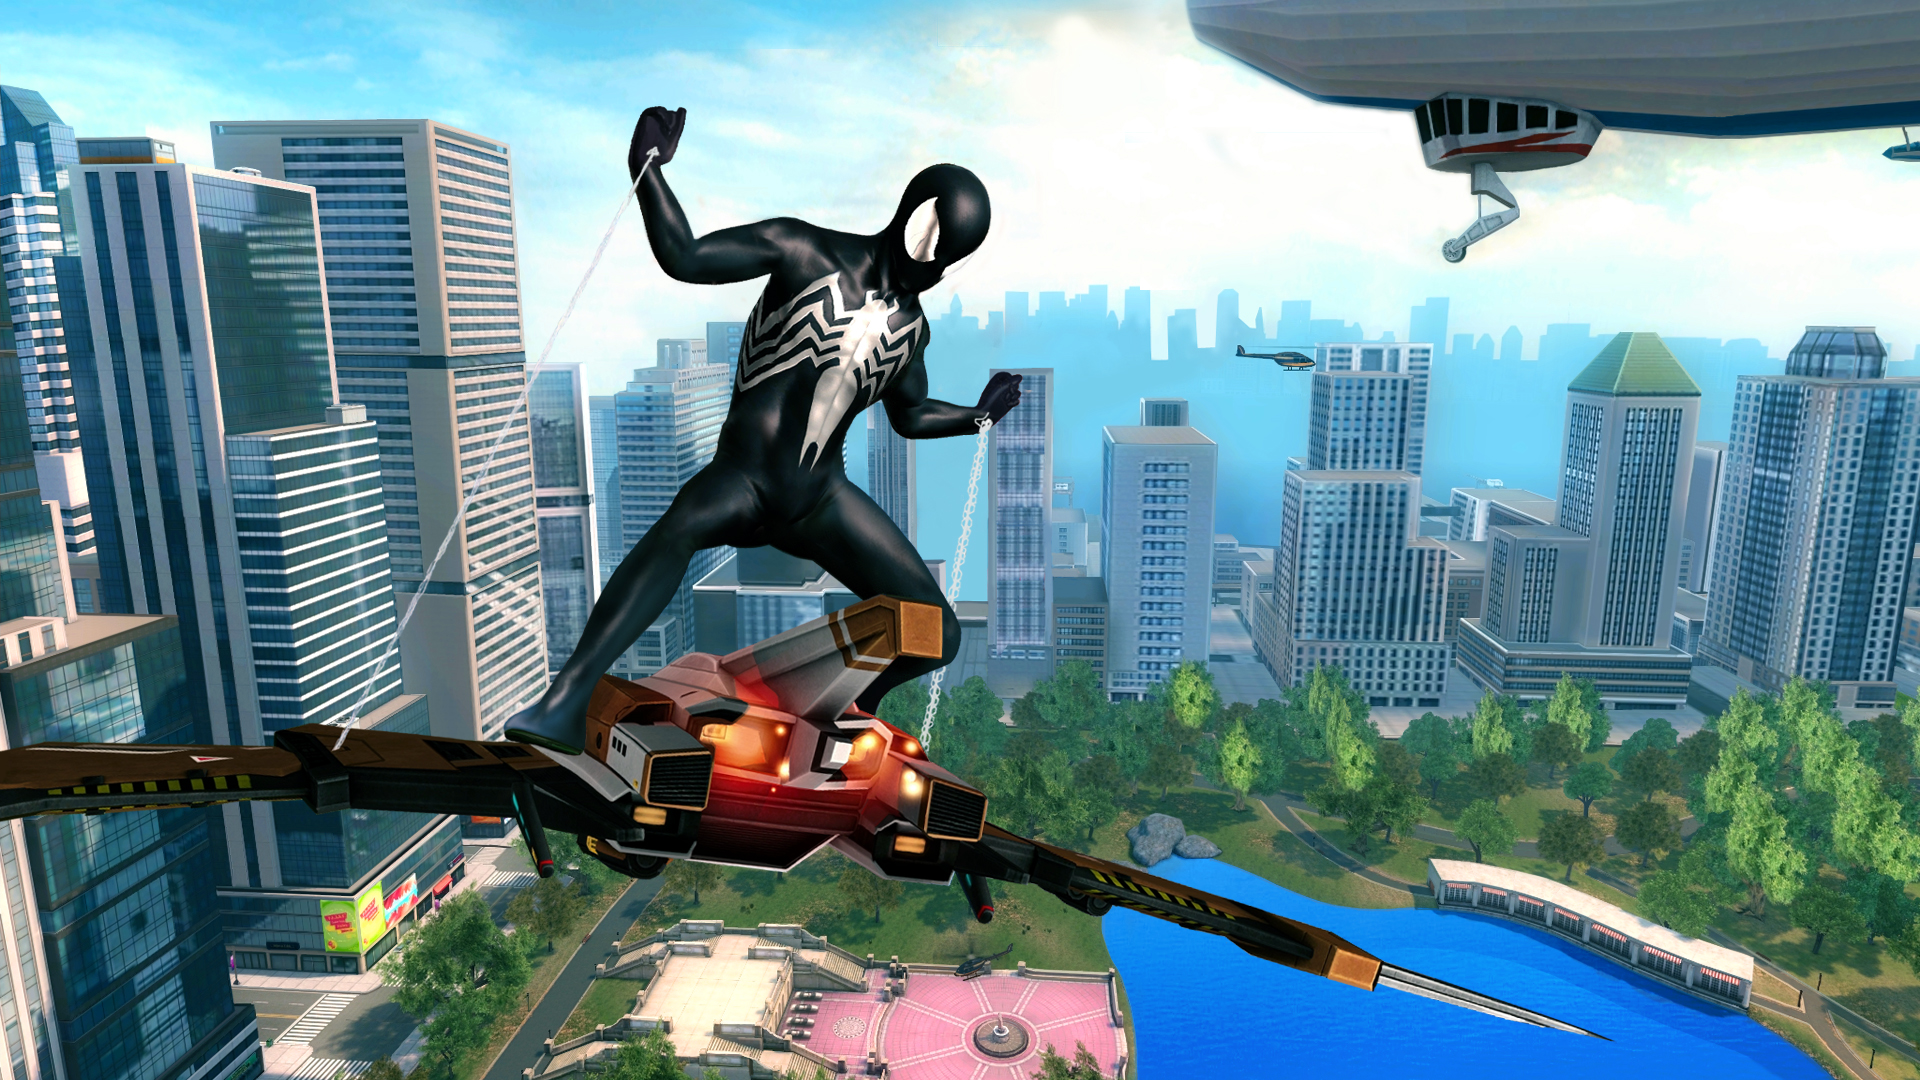 The Amazing Spider-Man 2 (2014 video game) - Wikipedia